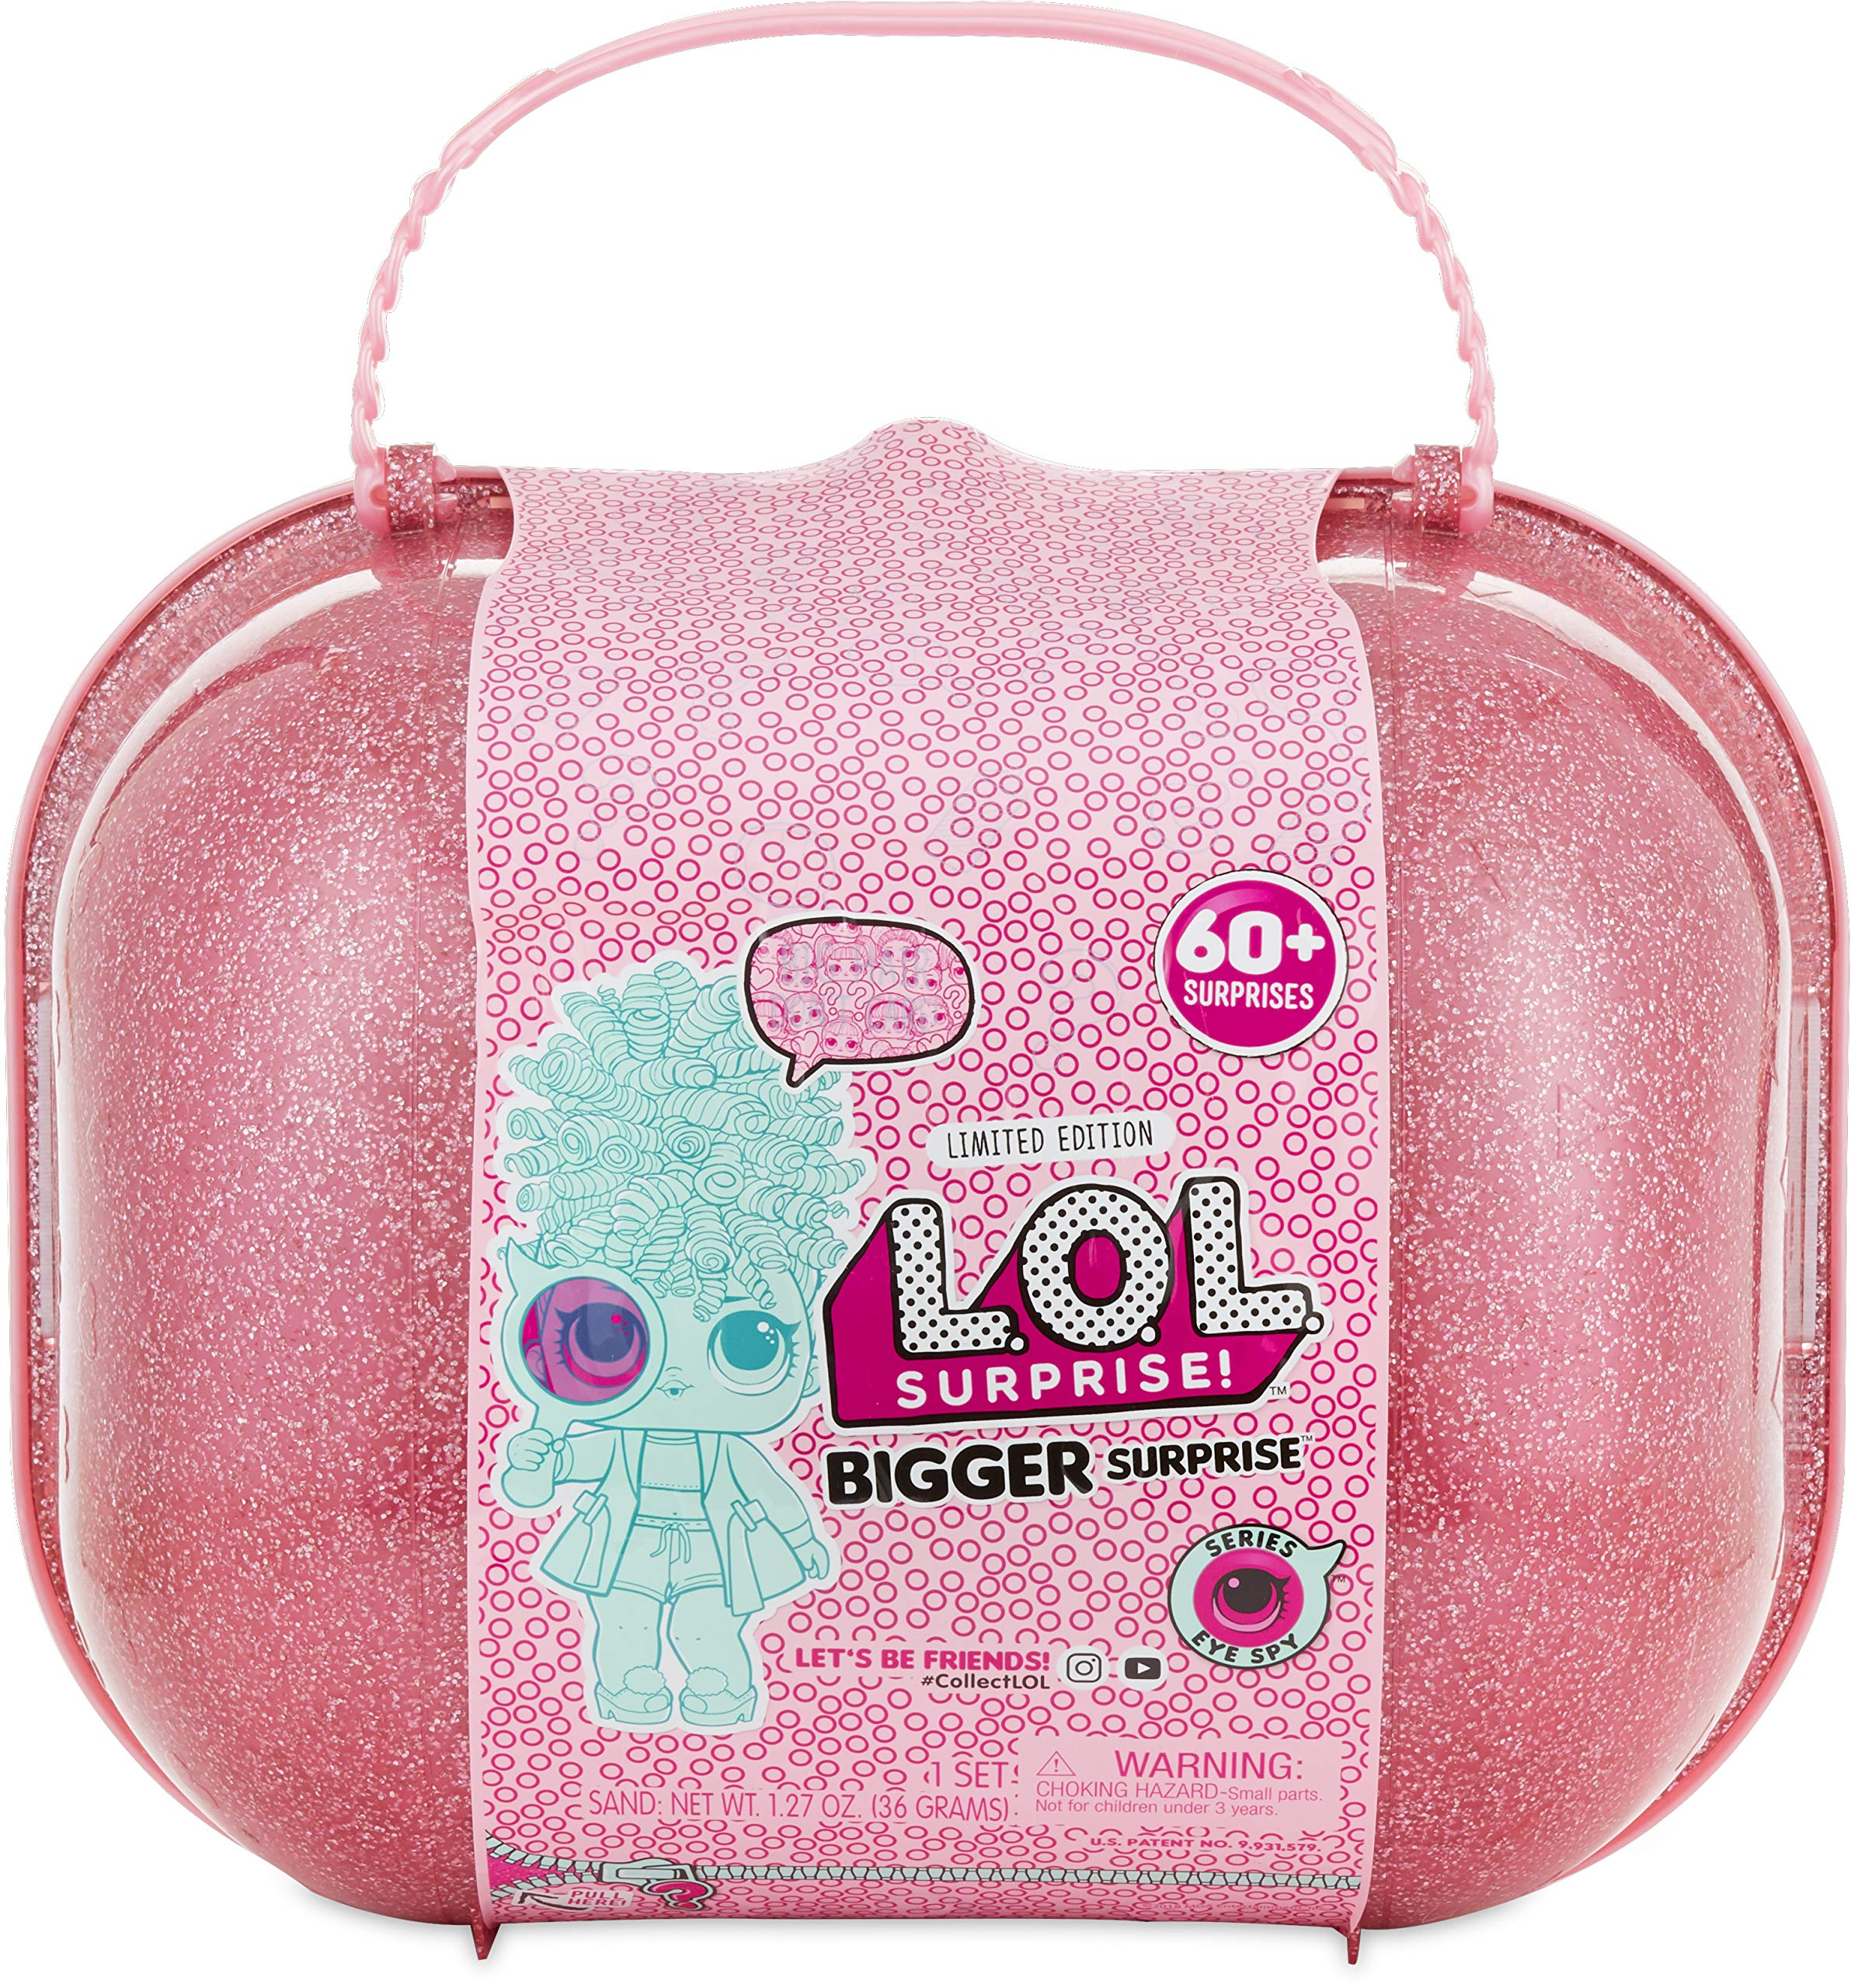 L.O.L. Surprise! Bigger Surprise with 60+ Surprises by L.O.L. Surprise!